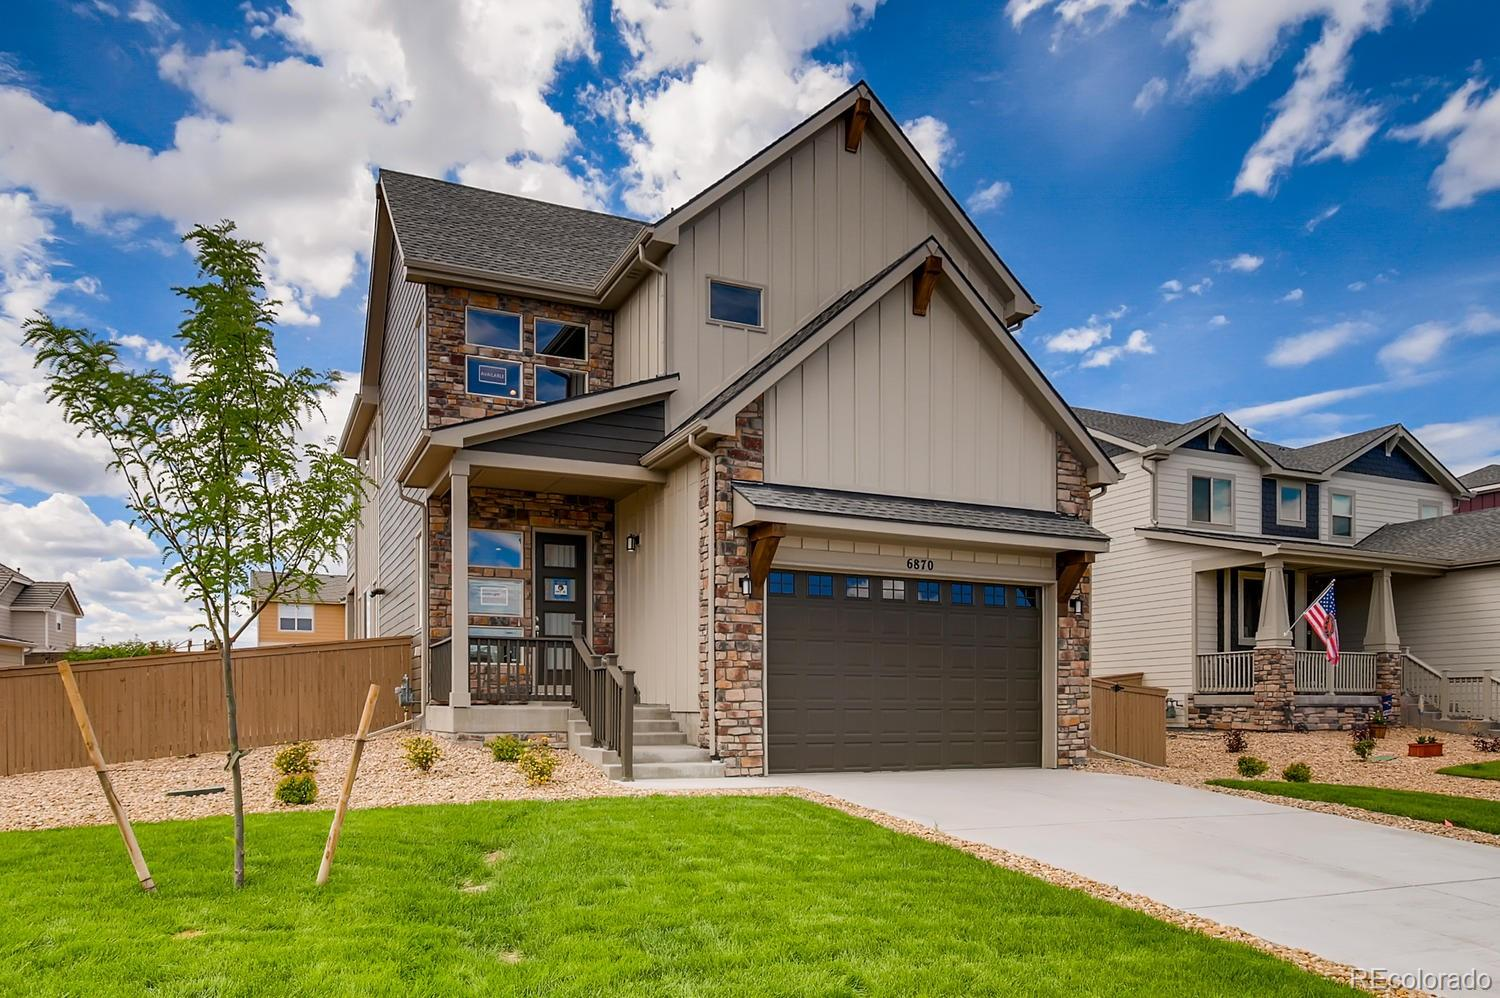 6870 Groveton Avenue Property Photo - Castle Rock, CO real estate listing